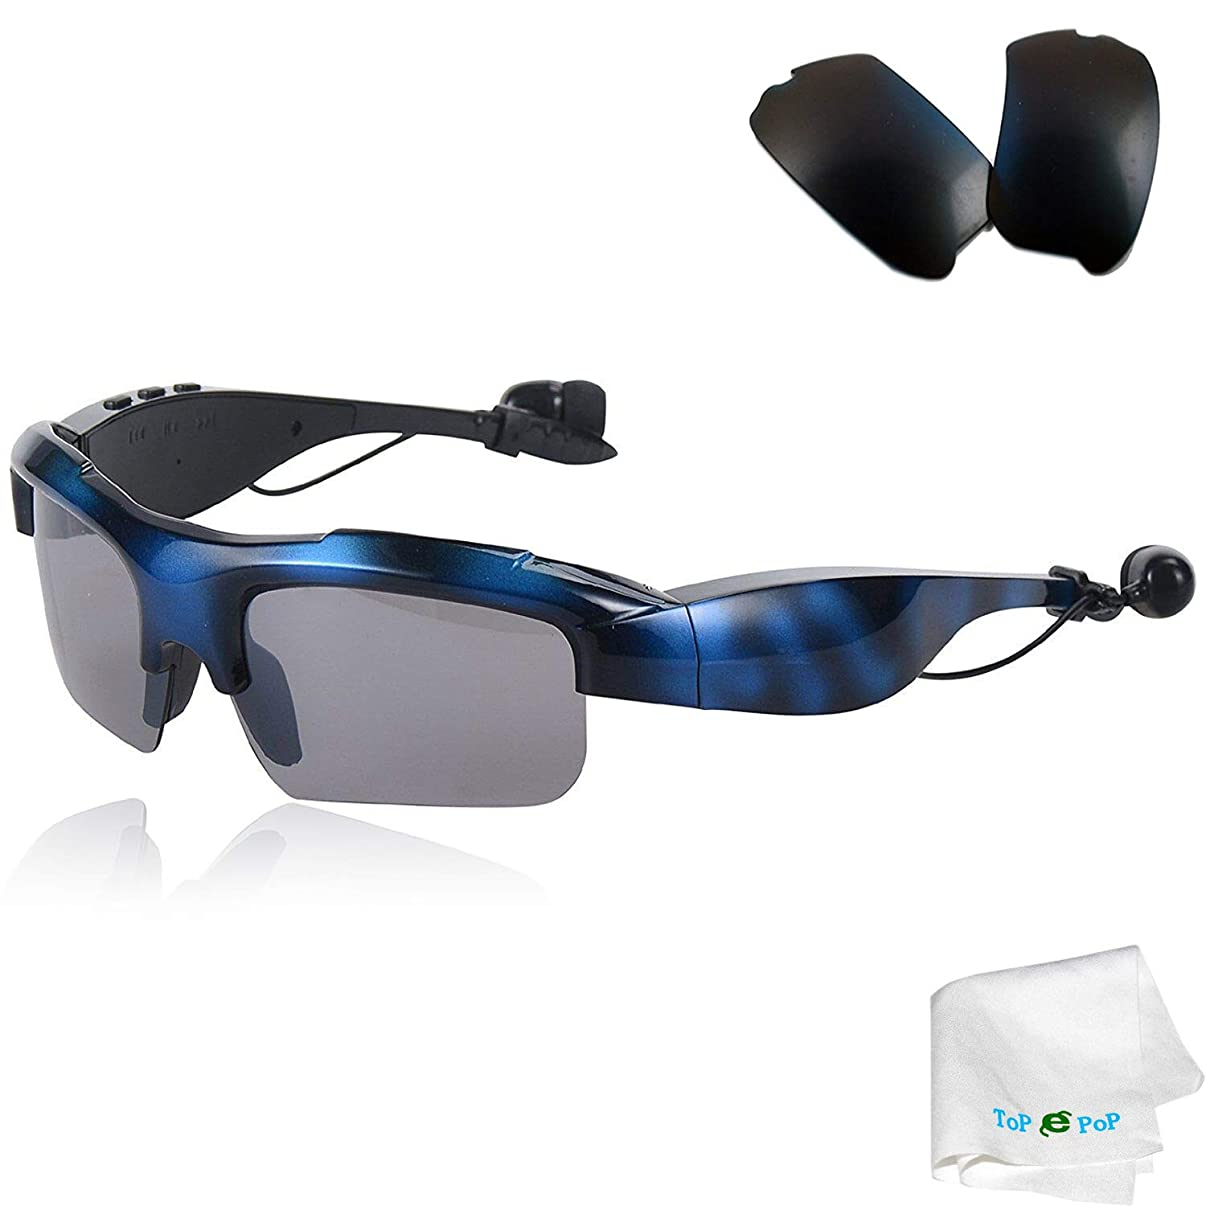 Bluetooth Sunglasses Wireless Sport Glasses Stereo Music Sunglasses Headset Headphones with Replacement Polarized Lens Compatible with Men Women Samsung Galaxy S9 S8 S7 S6 Huawei Alcatel Blue